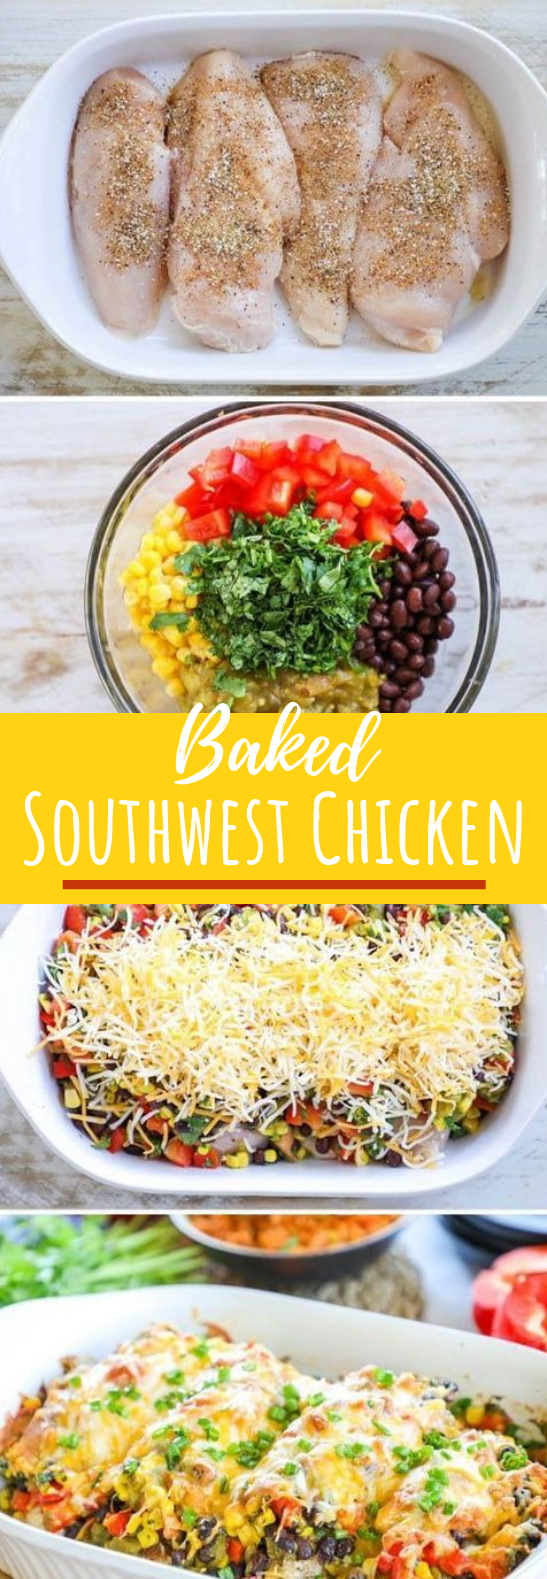 Baked Southwest Chicken #dinner #chicken